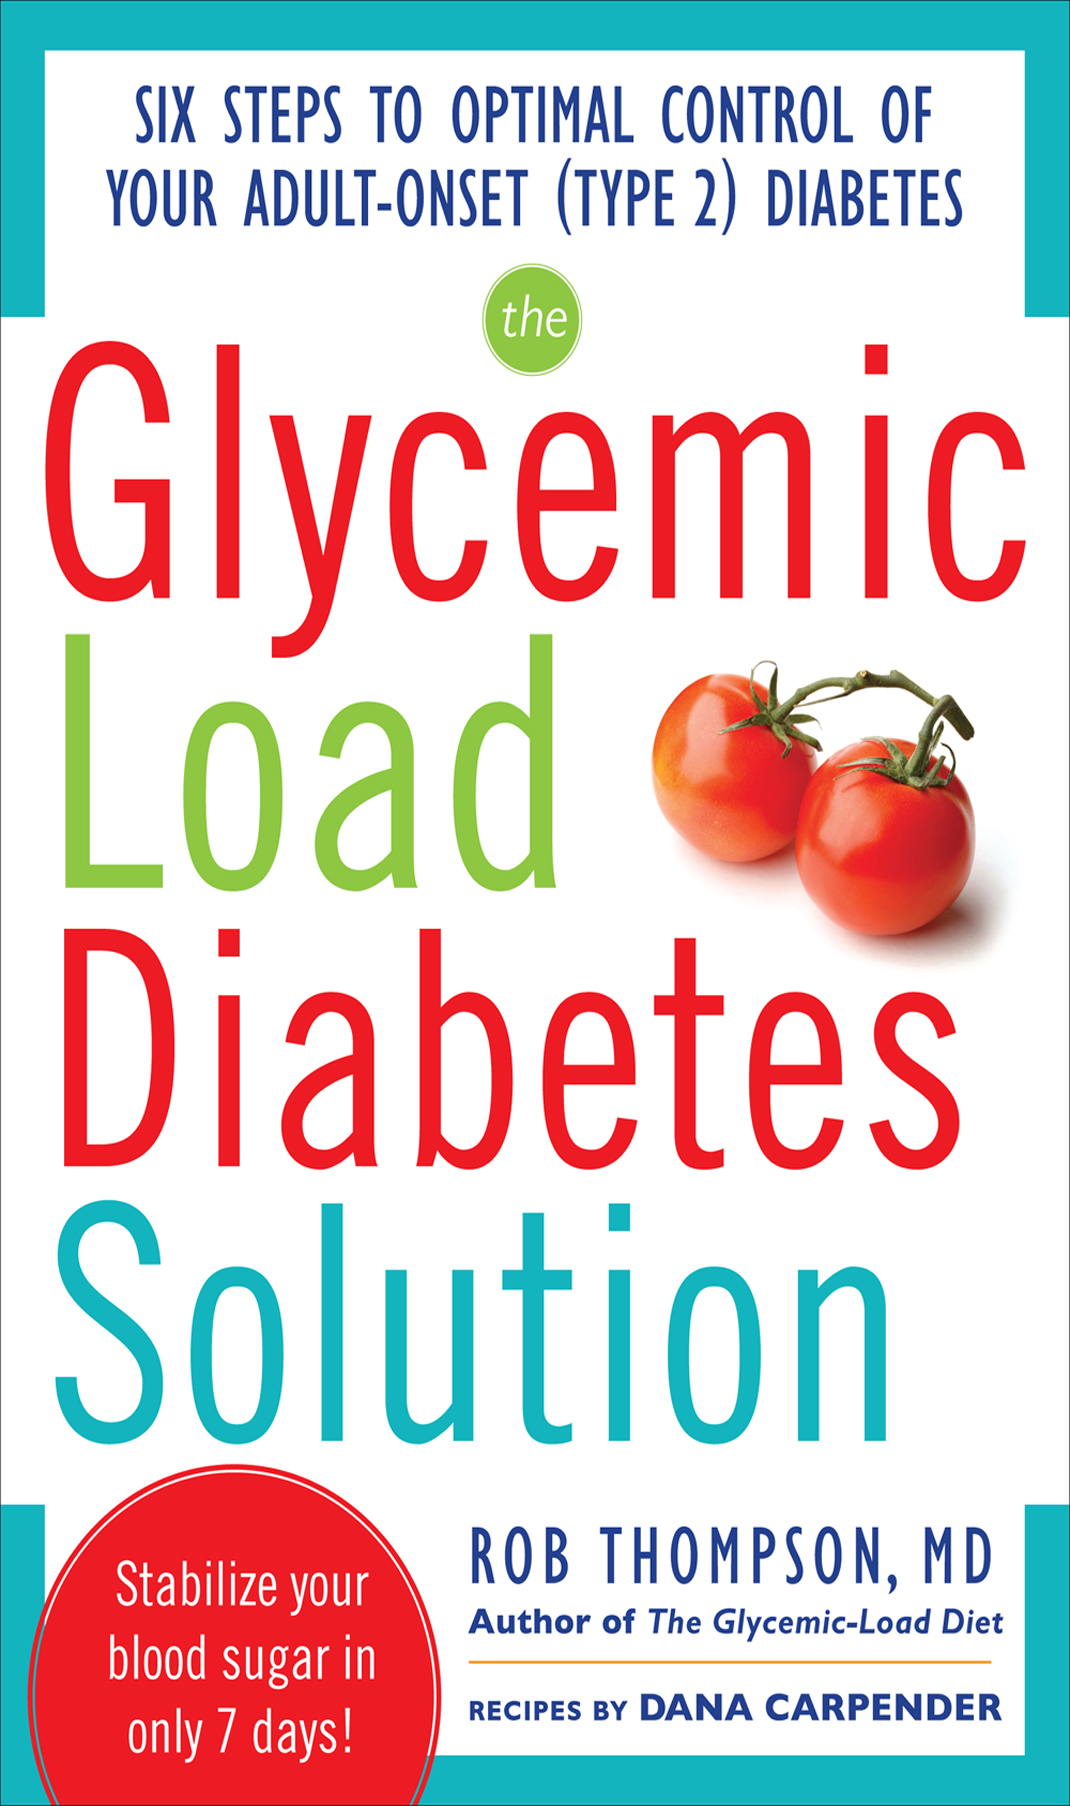 The Glycemic Load Diabetes Solution : Six Steps to Optimal Control of Your Adult-Onset (Type 2) Diabetes: Six Steps to Optimal Control of Your Adult-Onset (Type 2) Diabetes By:  Dana Carpender,Rob Thompson